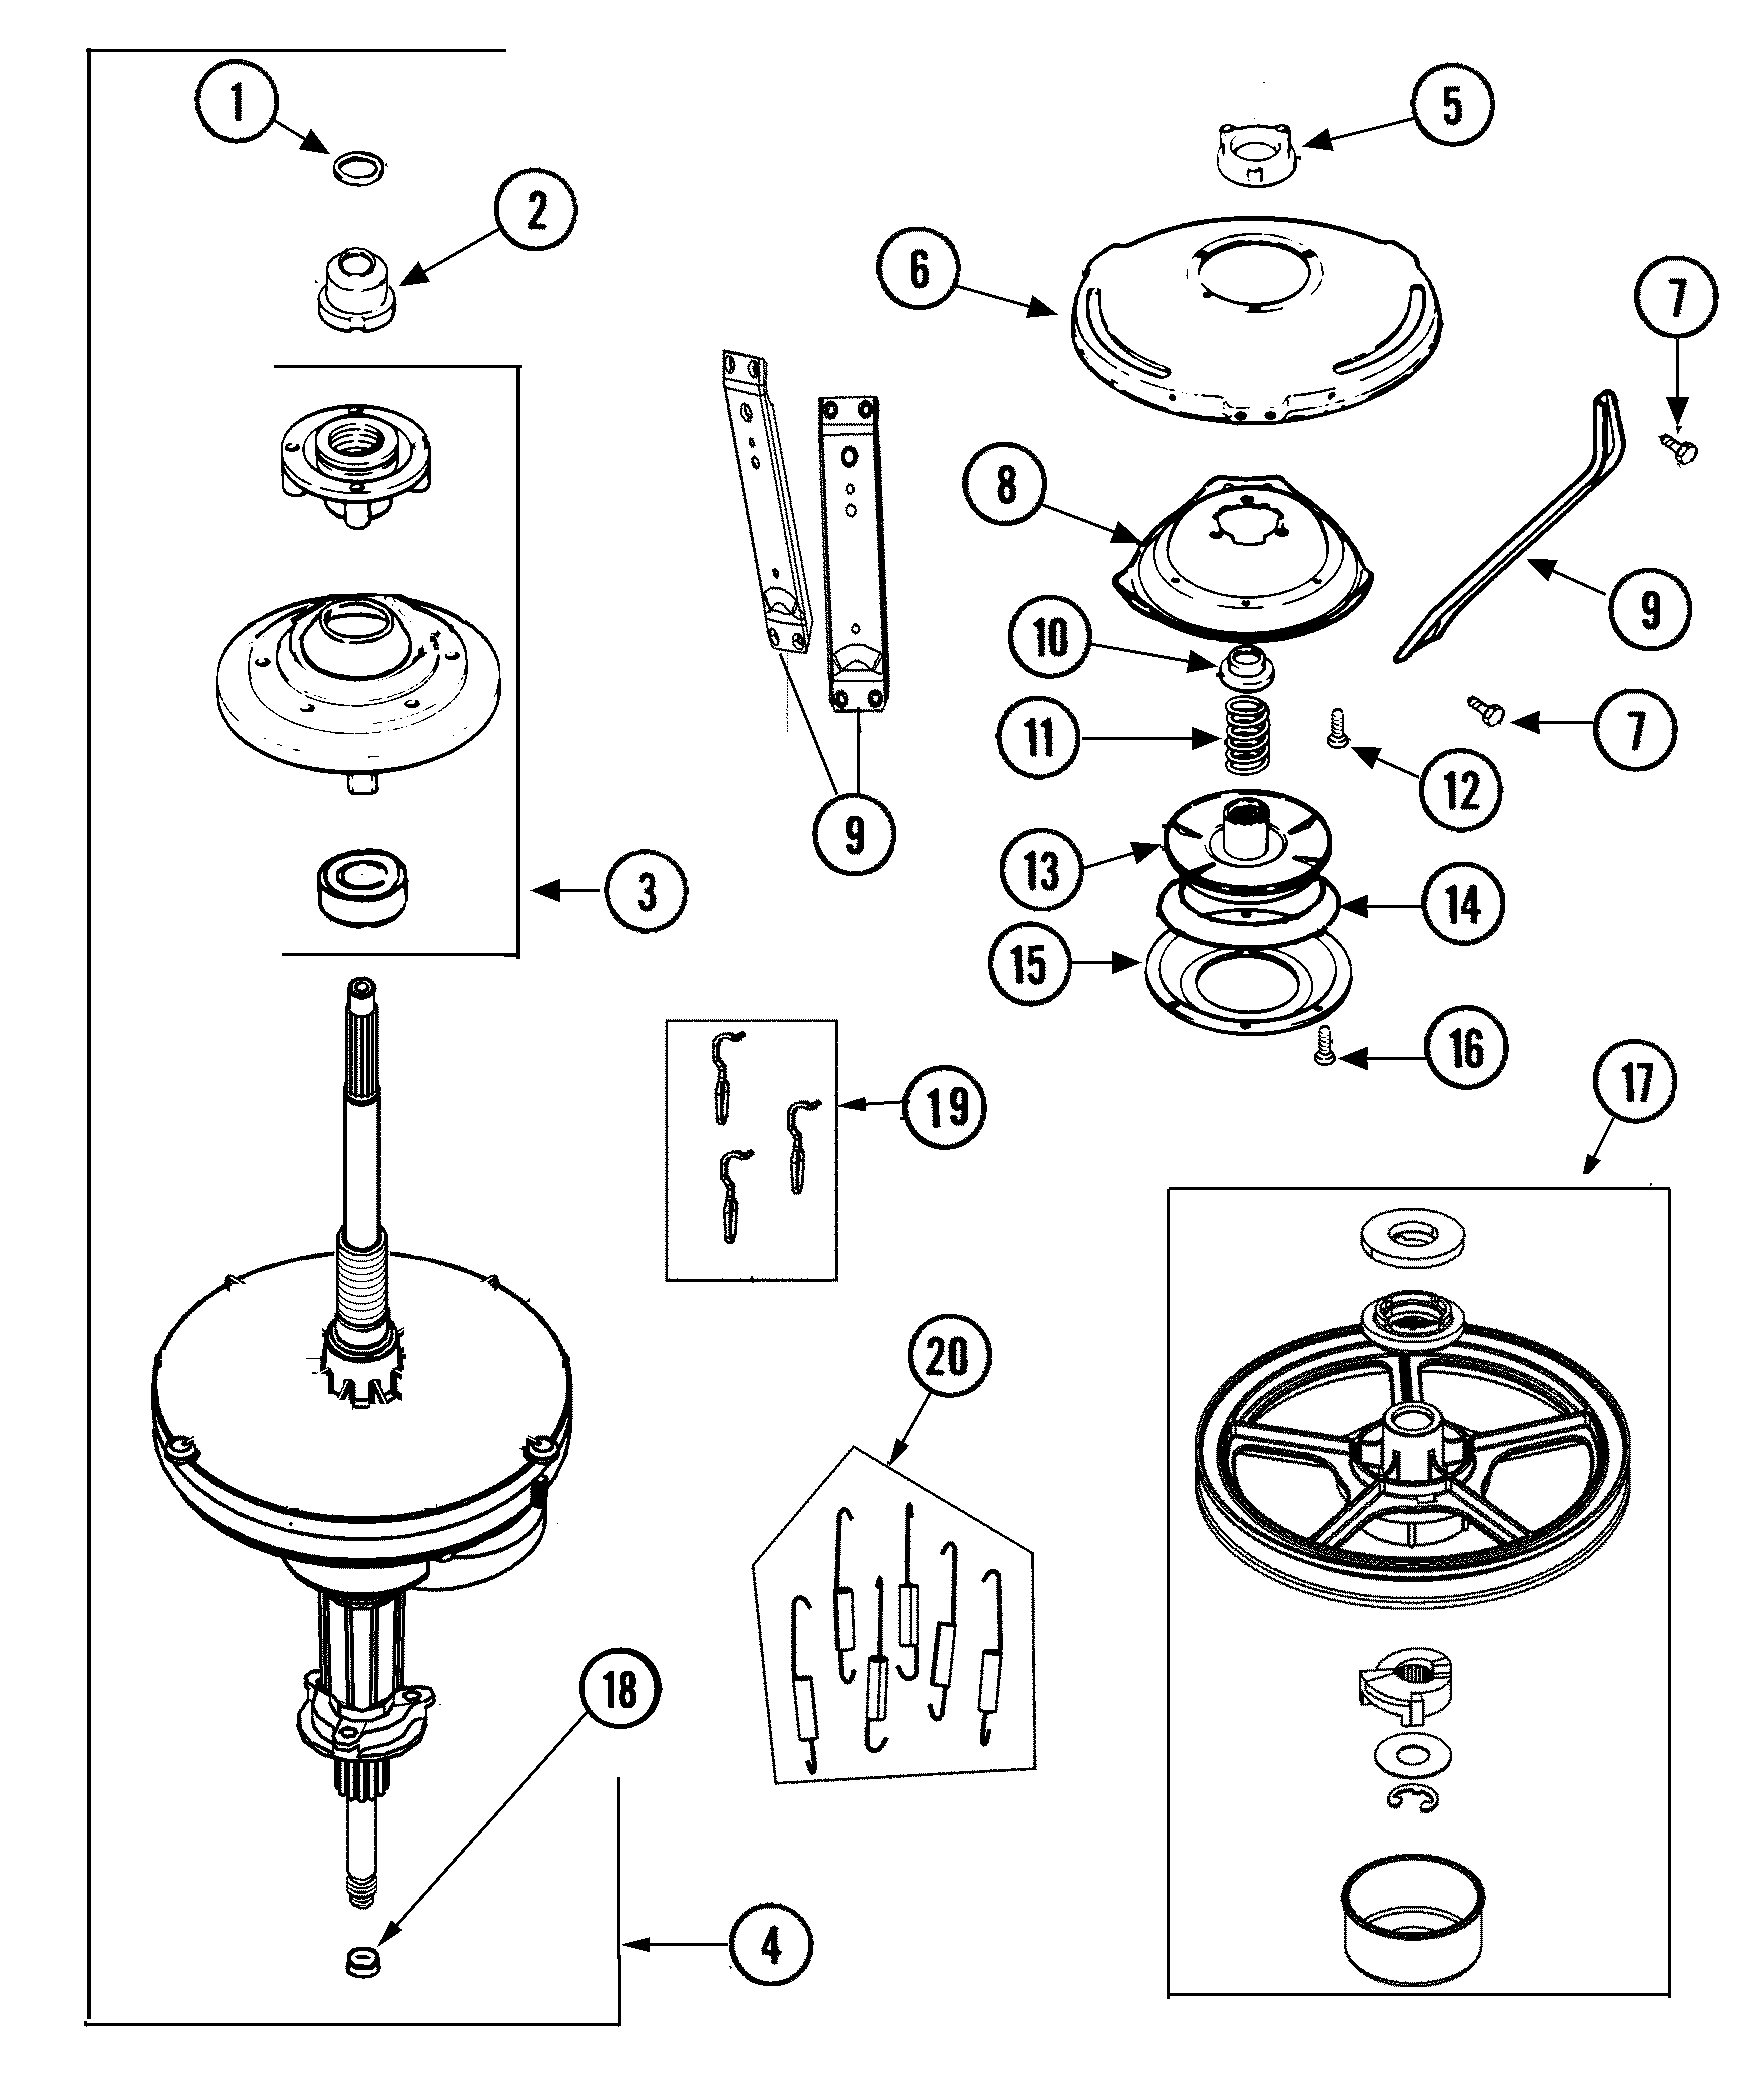 Maytag Bravos Washer Troubleshooting Manual